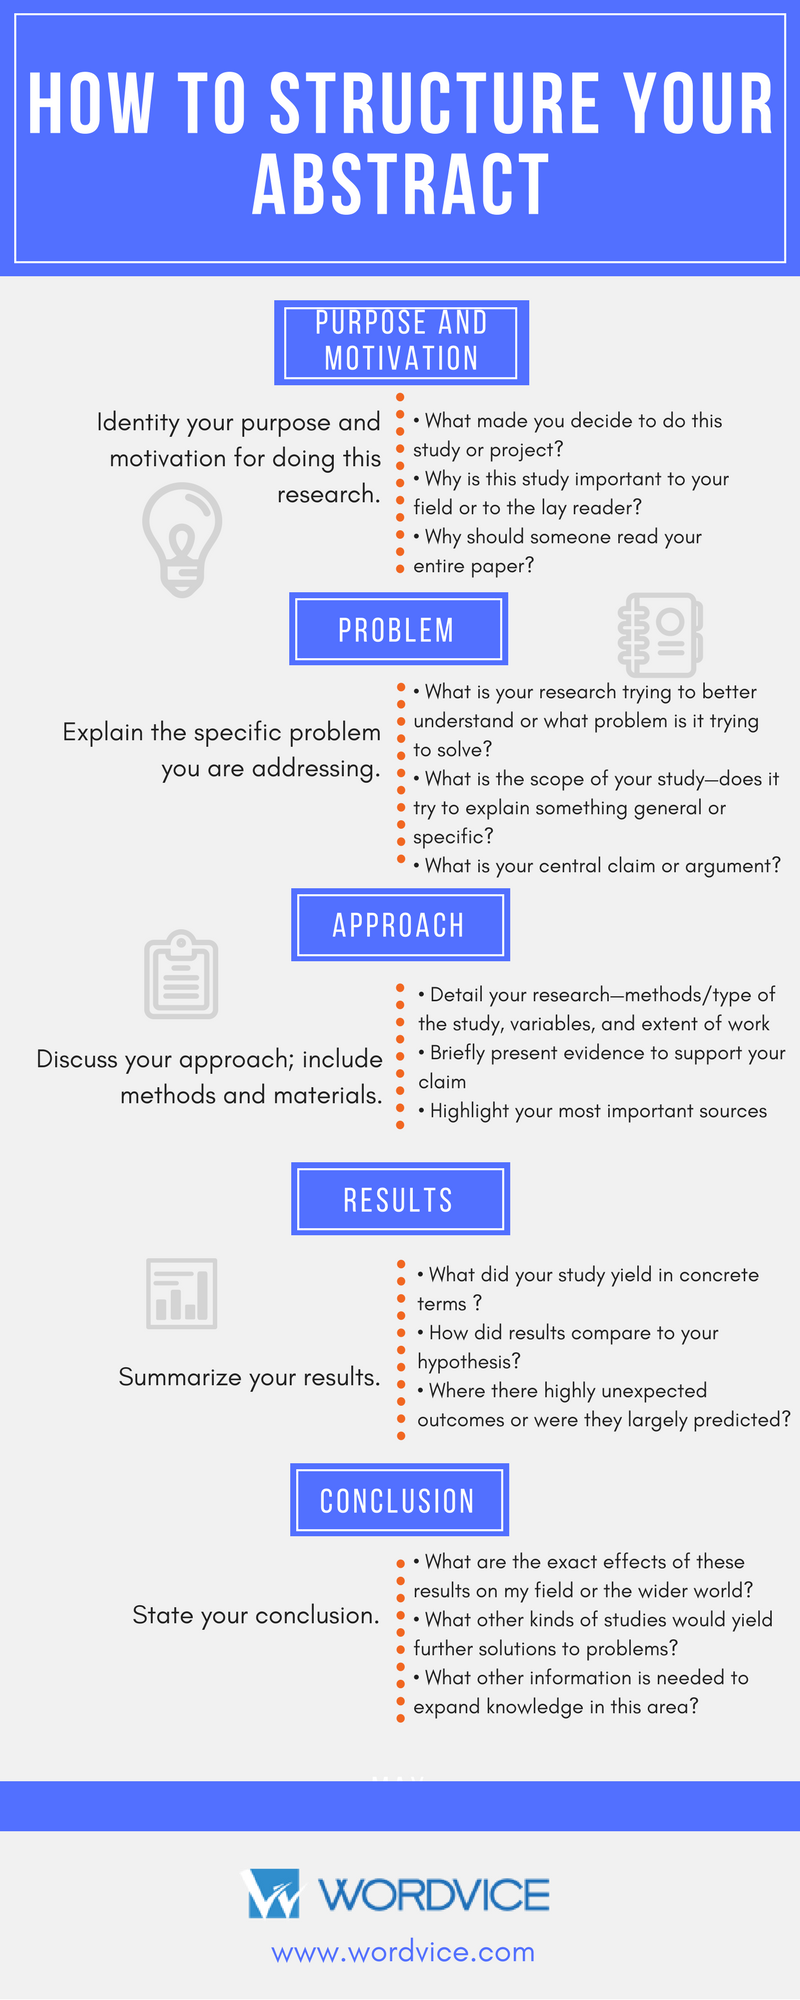 011 What Is The Purpose Of Research Paper How To Structure Your Impressive A Conducting Critiquing Process Writing Full